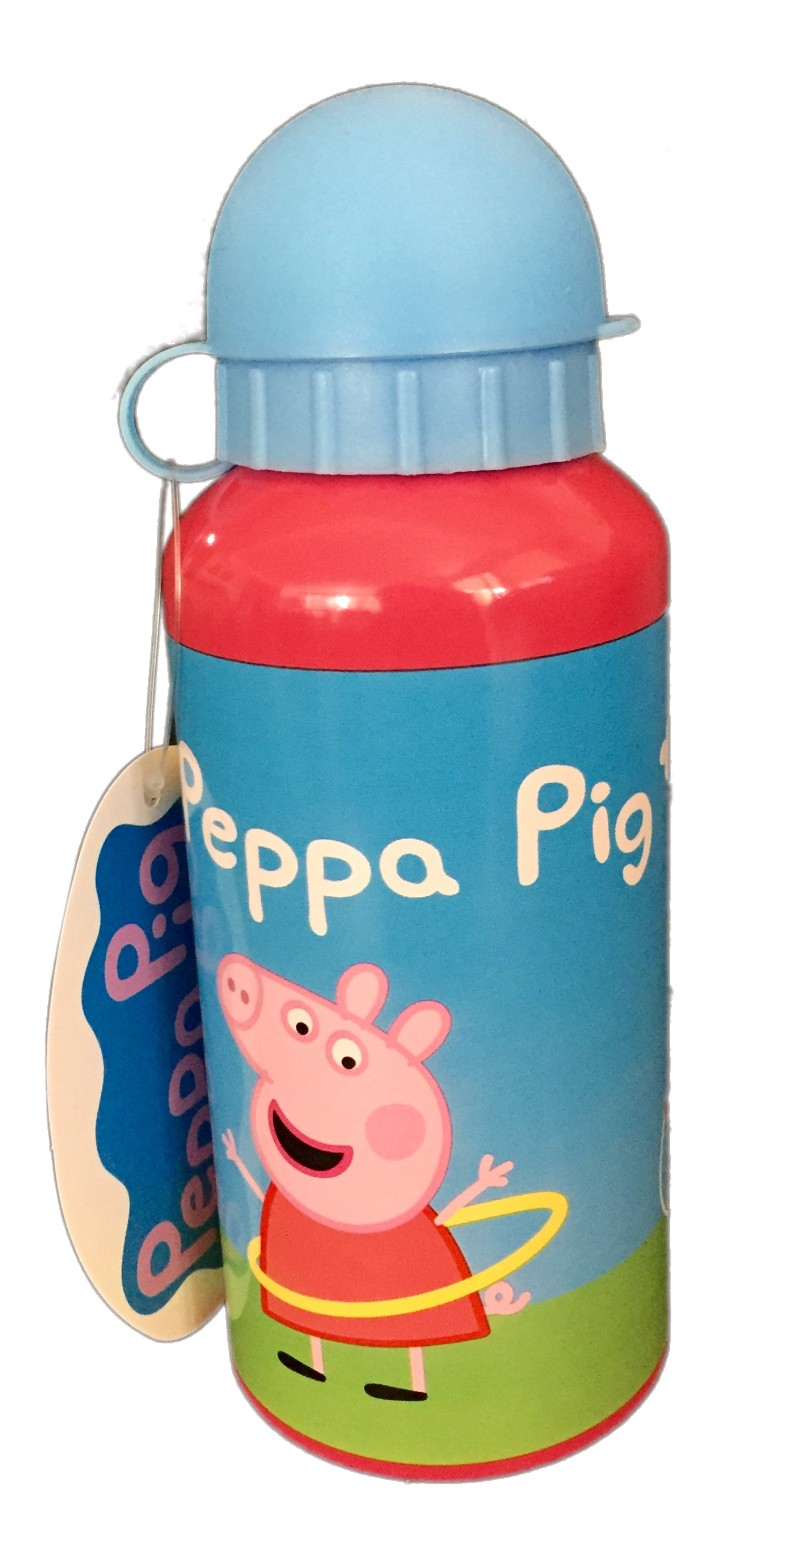 Peppa Pig Aluminium Drink Bottle 400ml